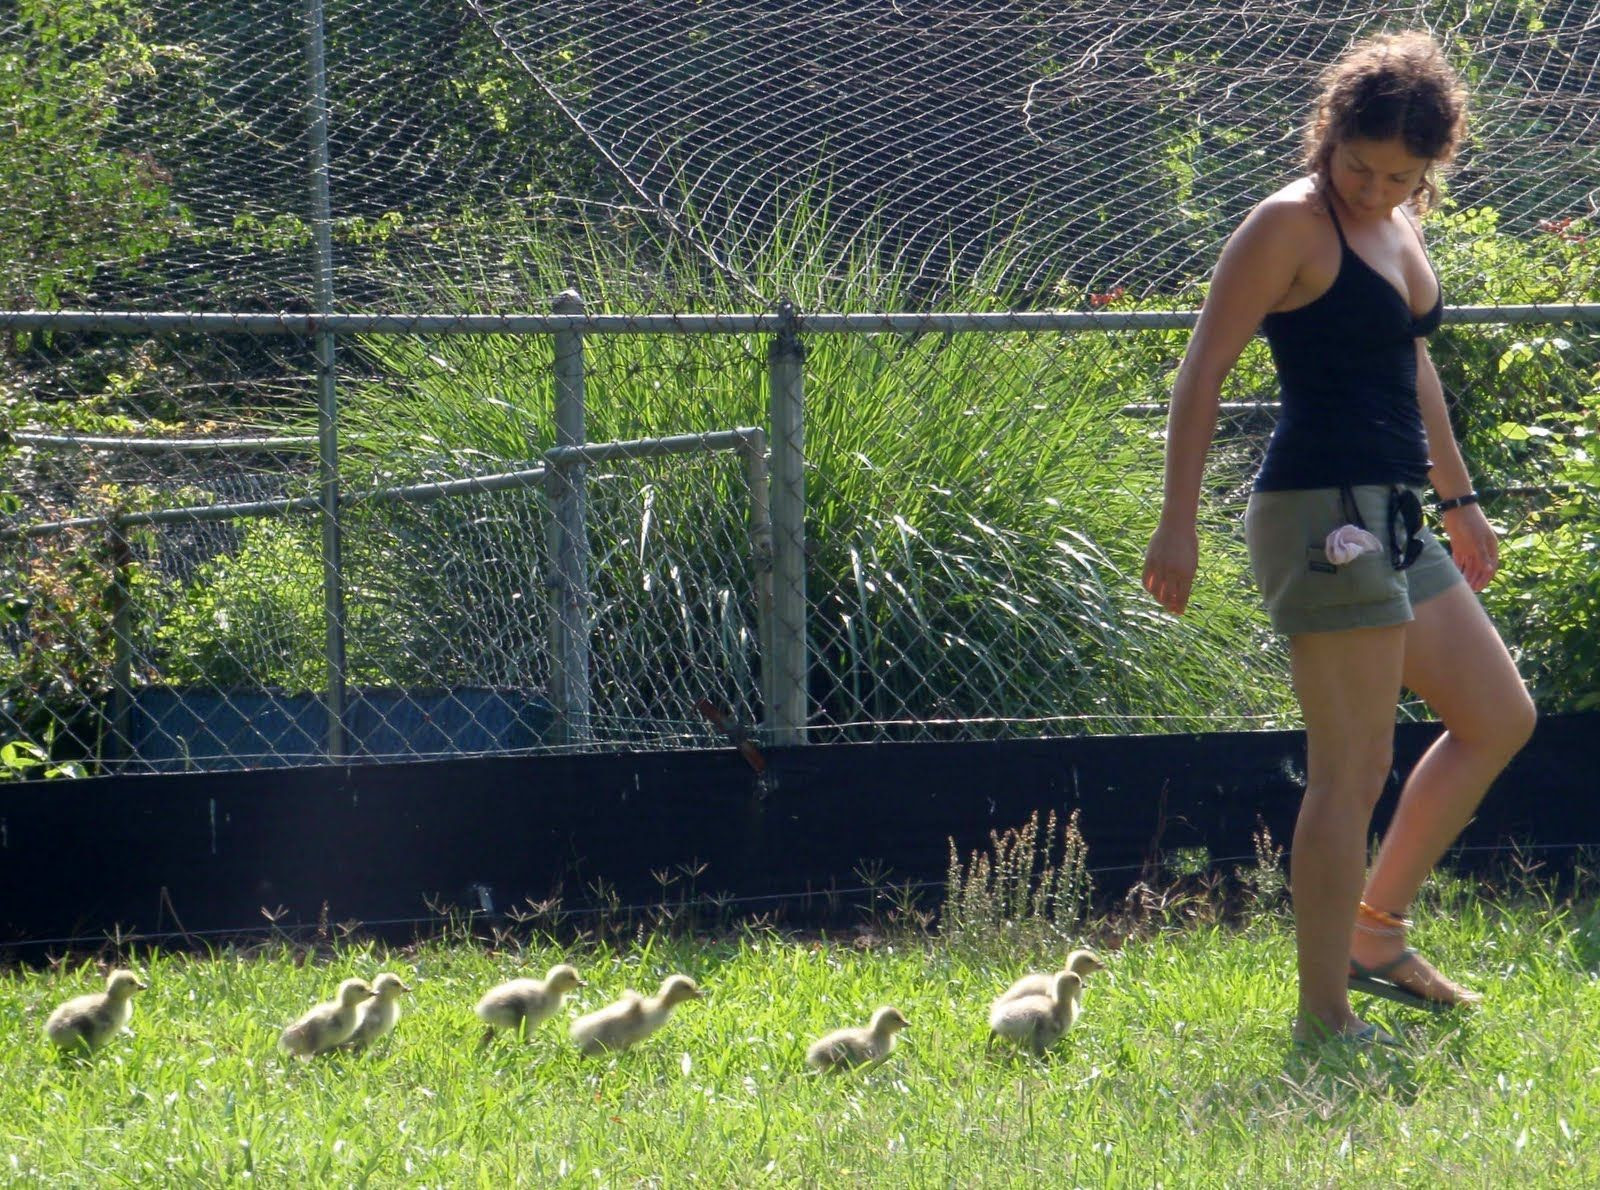 Researcher Jessica Meir is followed by goslings that have imprinted on her.